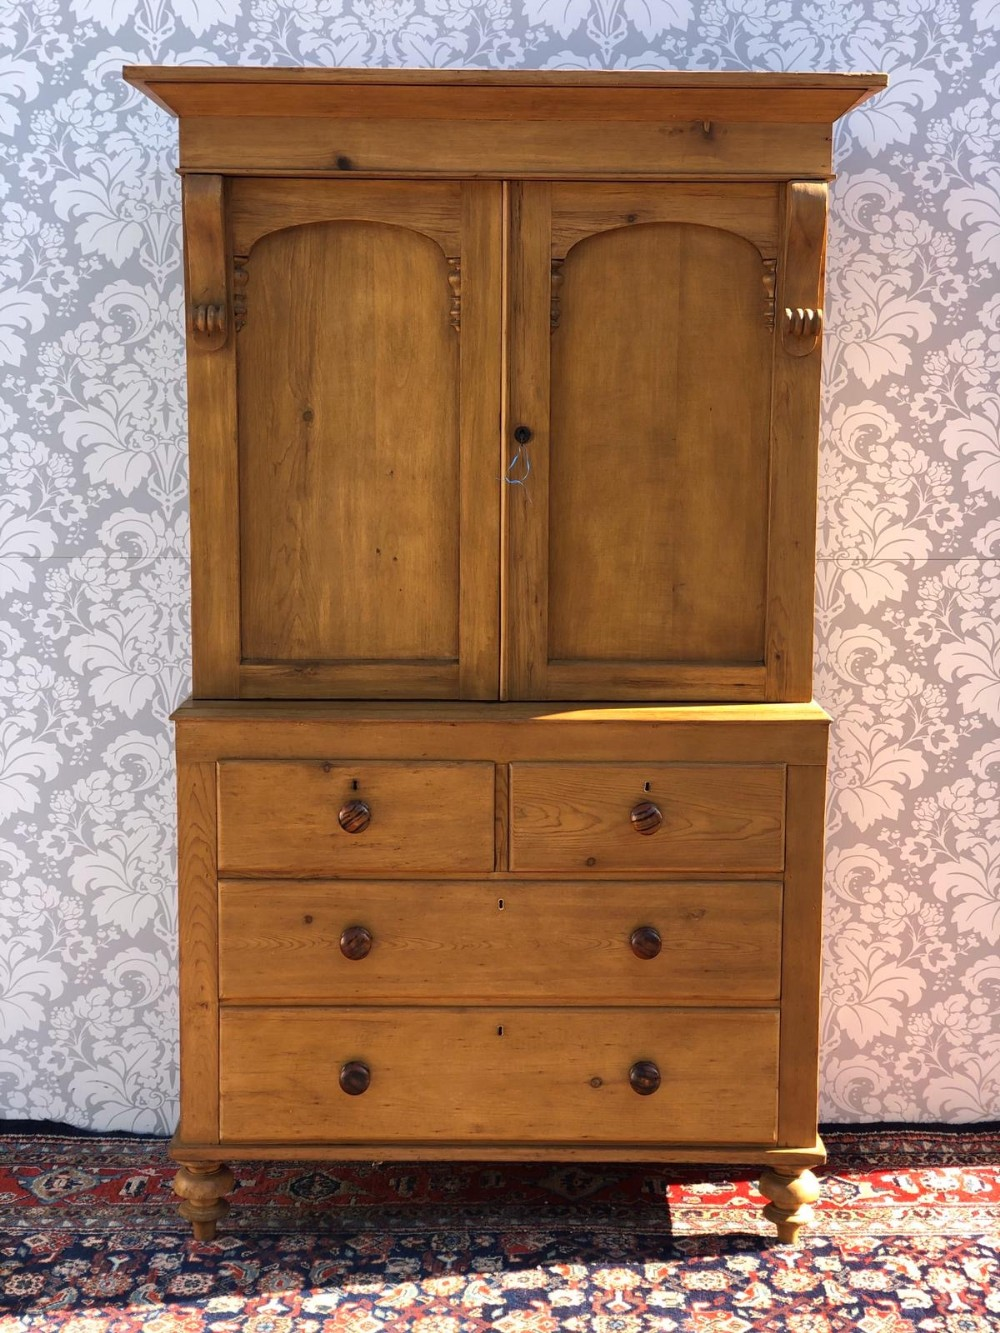 outstanding quality victorian pine linen press stripped and waxed superb very clean